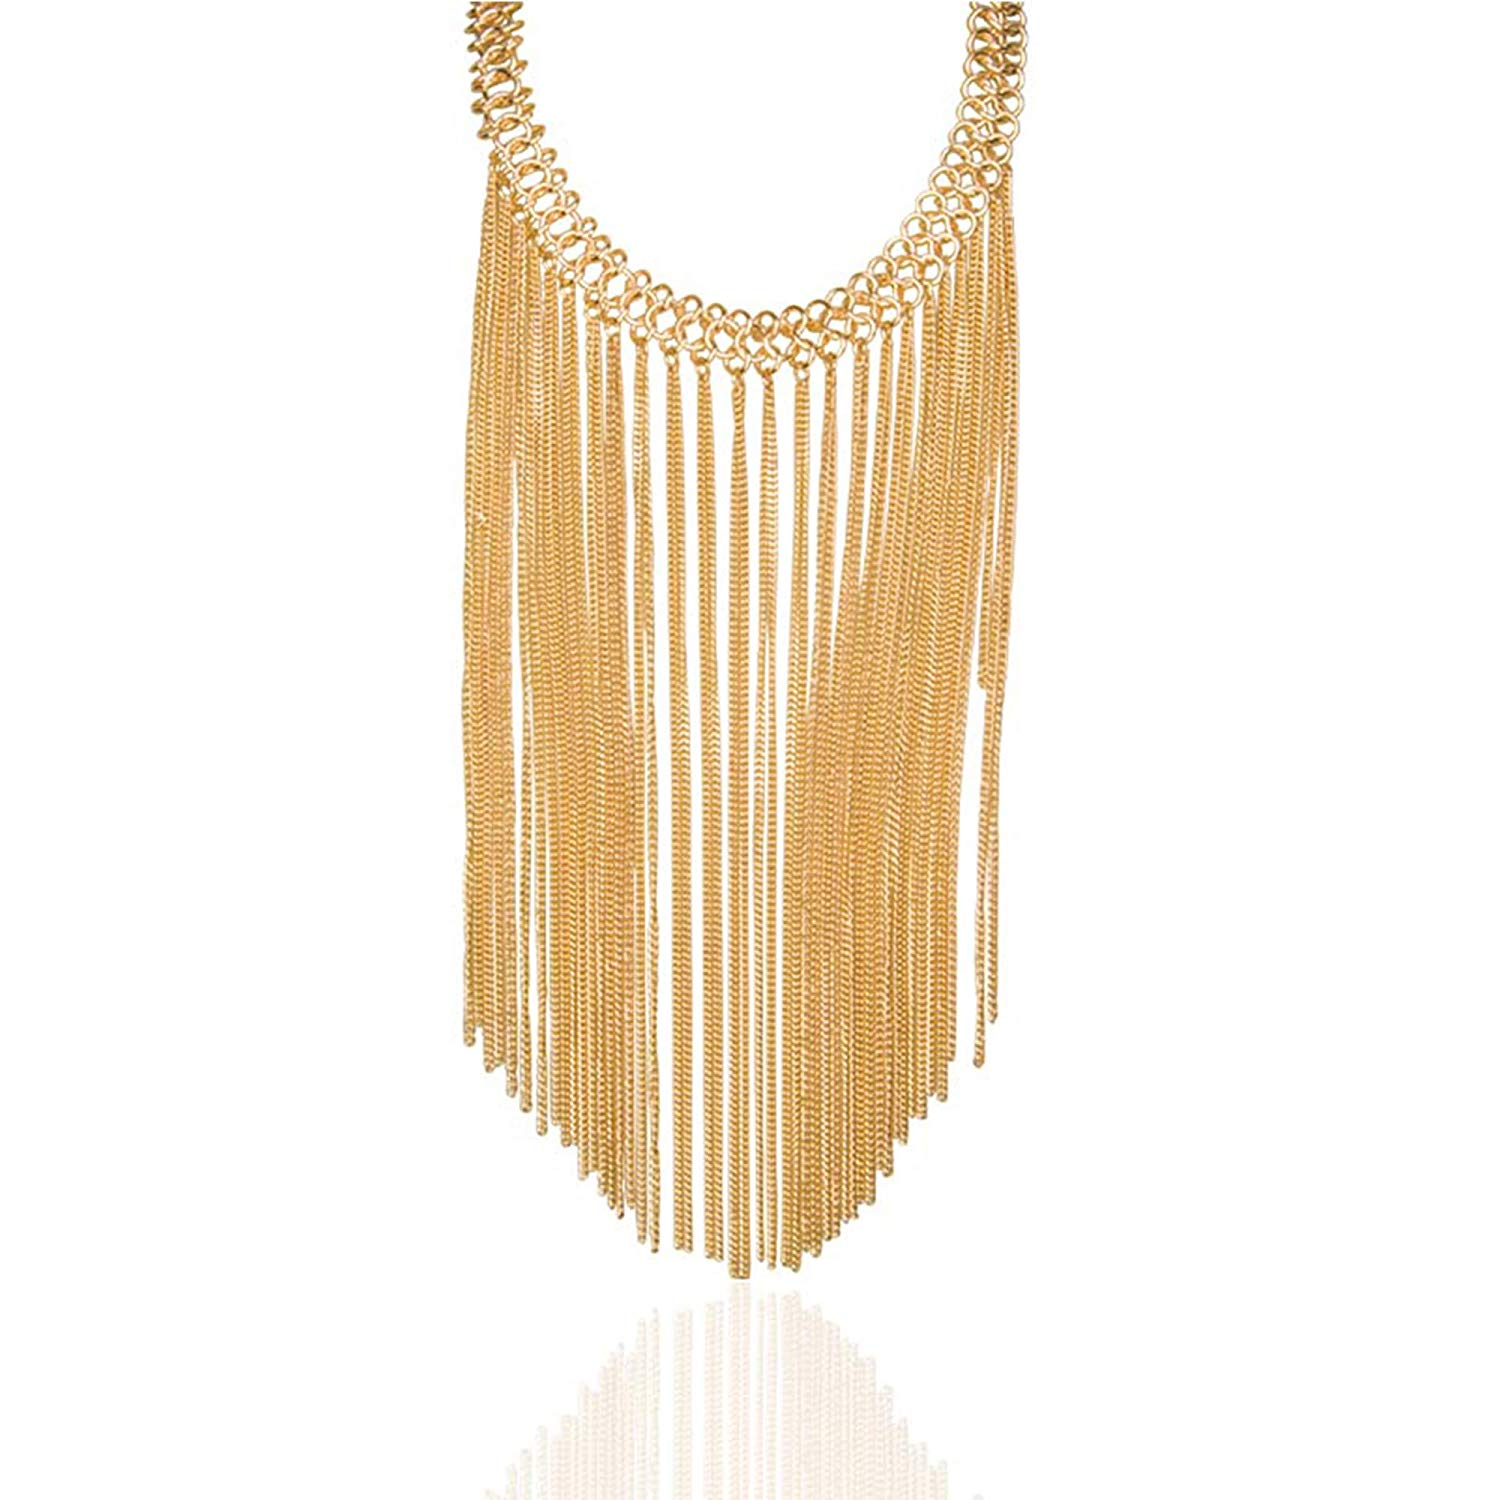 71R8B3qUwWL._UL1500_ Gold Multi Layered Drop Dangle Long Chain Tassel Statement Necklace for Women